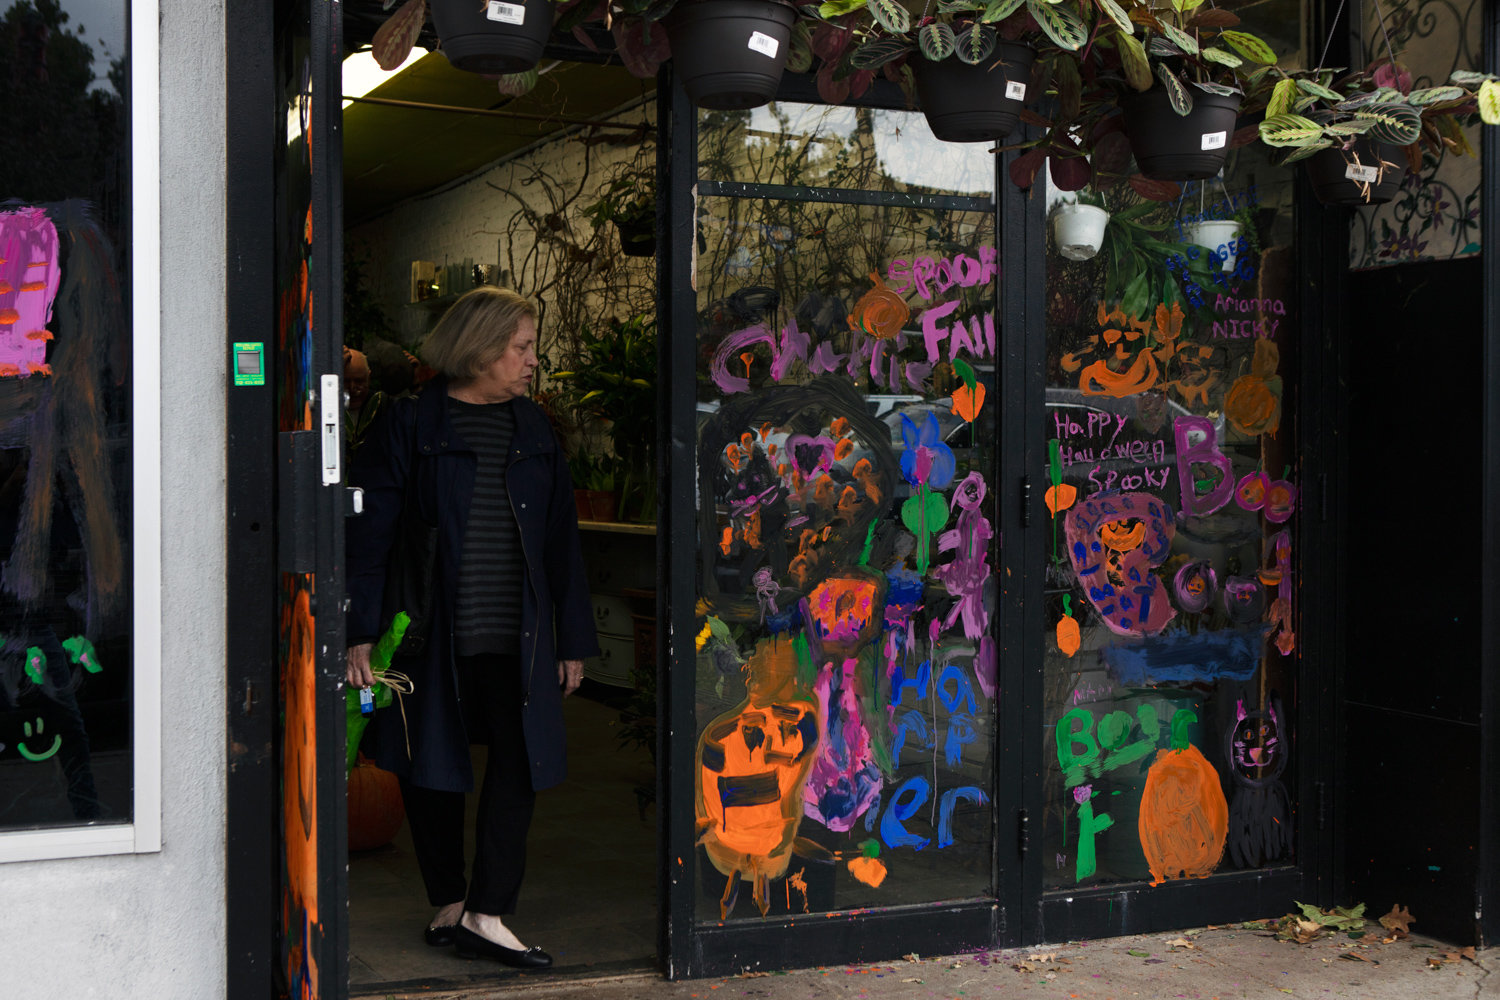 John's Botany Bay Florist was among the businesses along Riverdale Avenue to participate in the Kiwanis Club's annual Halloween window painting contest where children were allowed to be the artists.